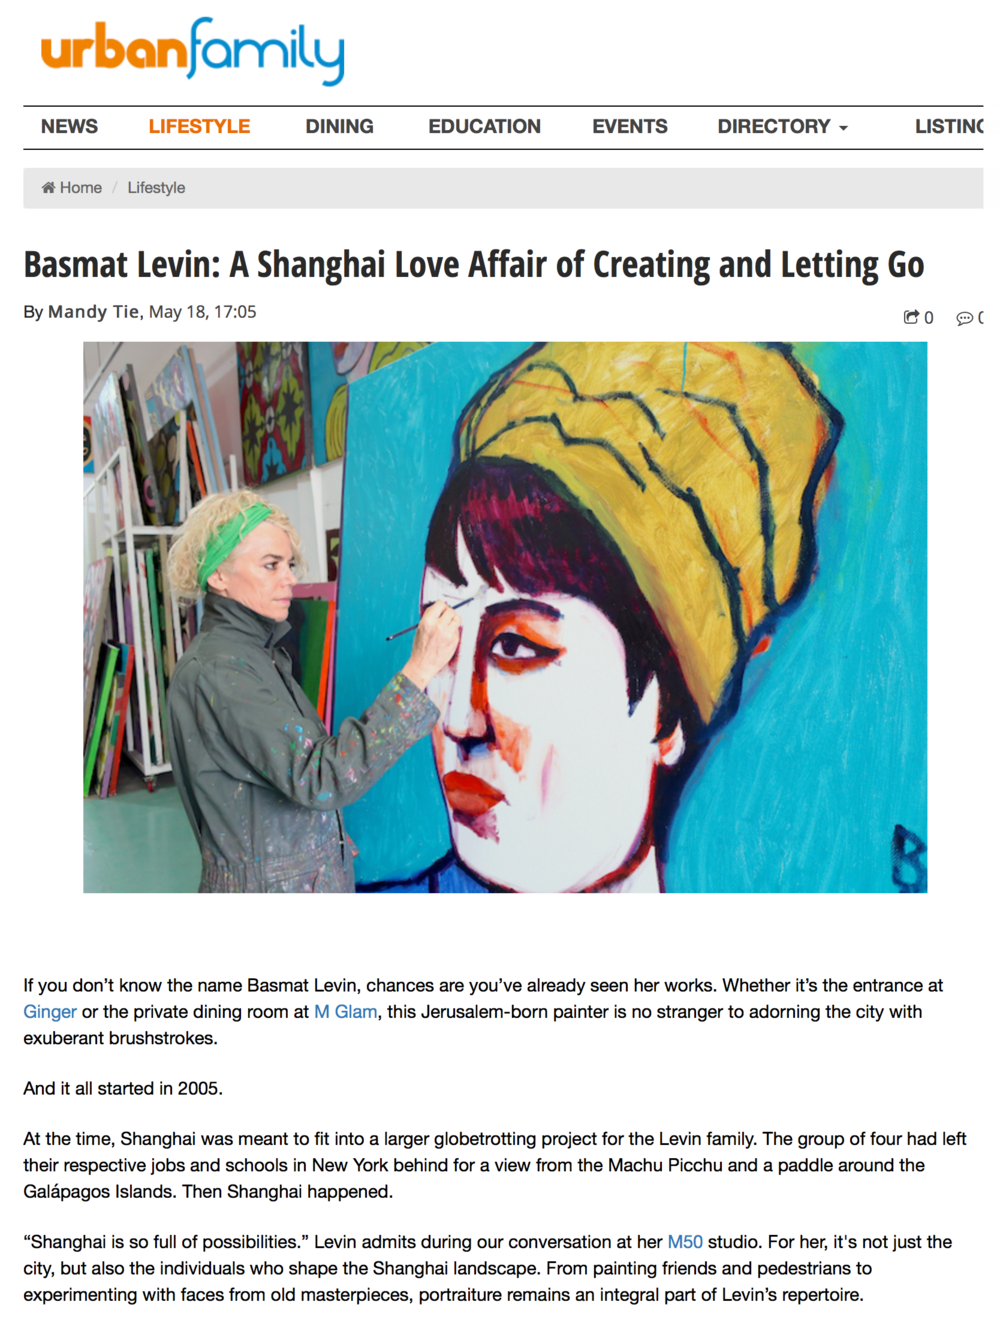 """UrbanFamily, 18 May, 2018 """" Basmat Levin: A Shanghai Love Affair of Creating and Letting Go""""  Learn More"""